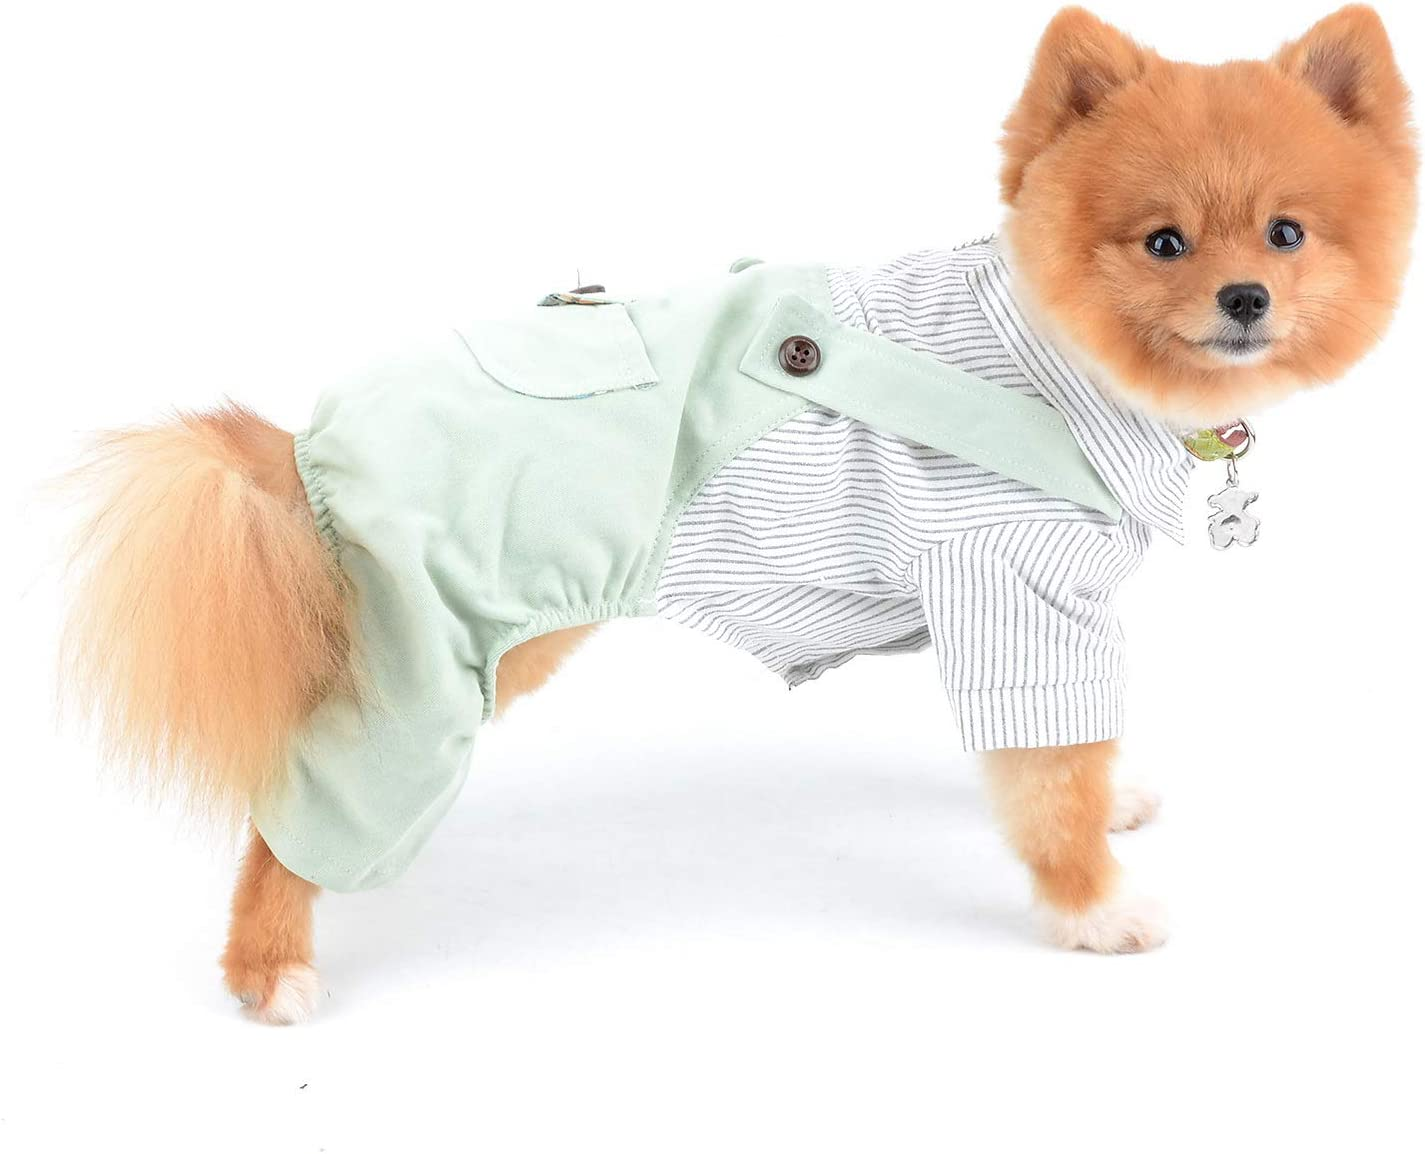 SELMAI Dog Outfits for Small Dogs Boy Summer Striped Shirts with Pants Jumpsuits One Piece Apparel for Cats Puppies Chihuahua Clothes Adorable Overalls for Medium Pets 4 Legs Spring Autumn